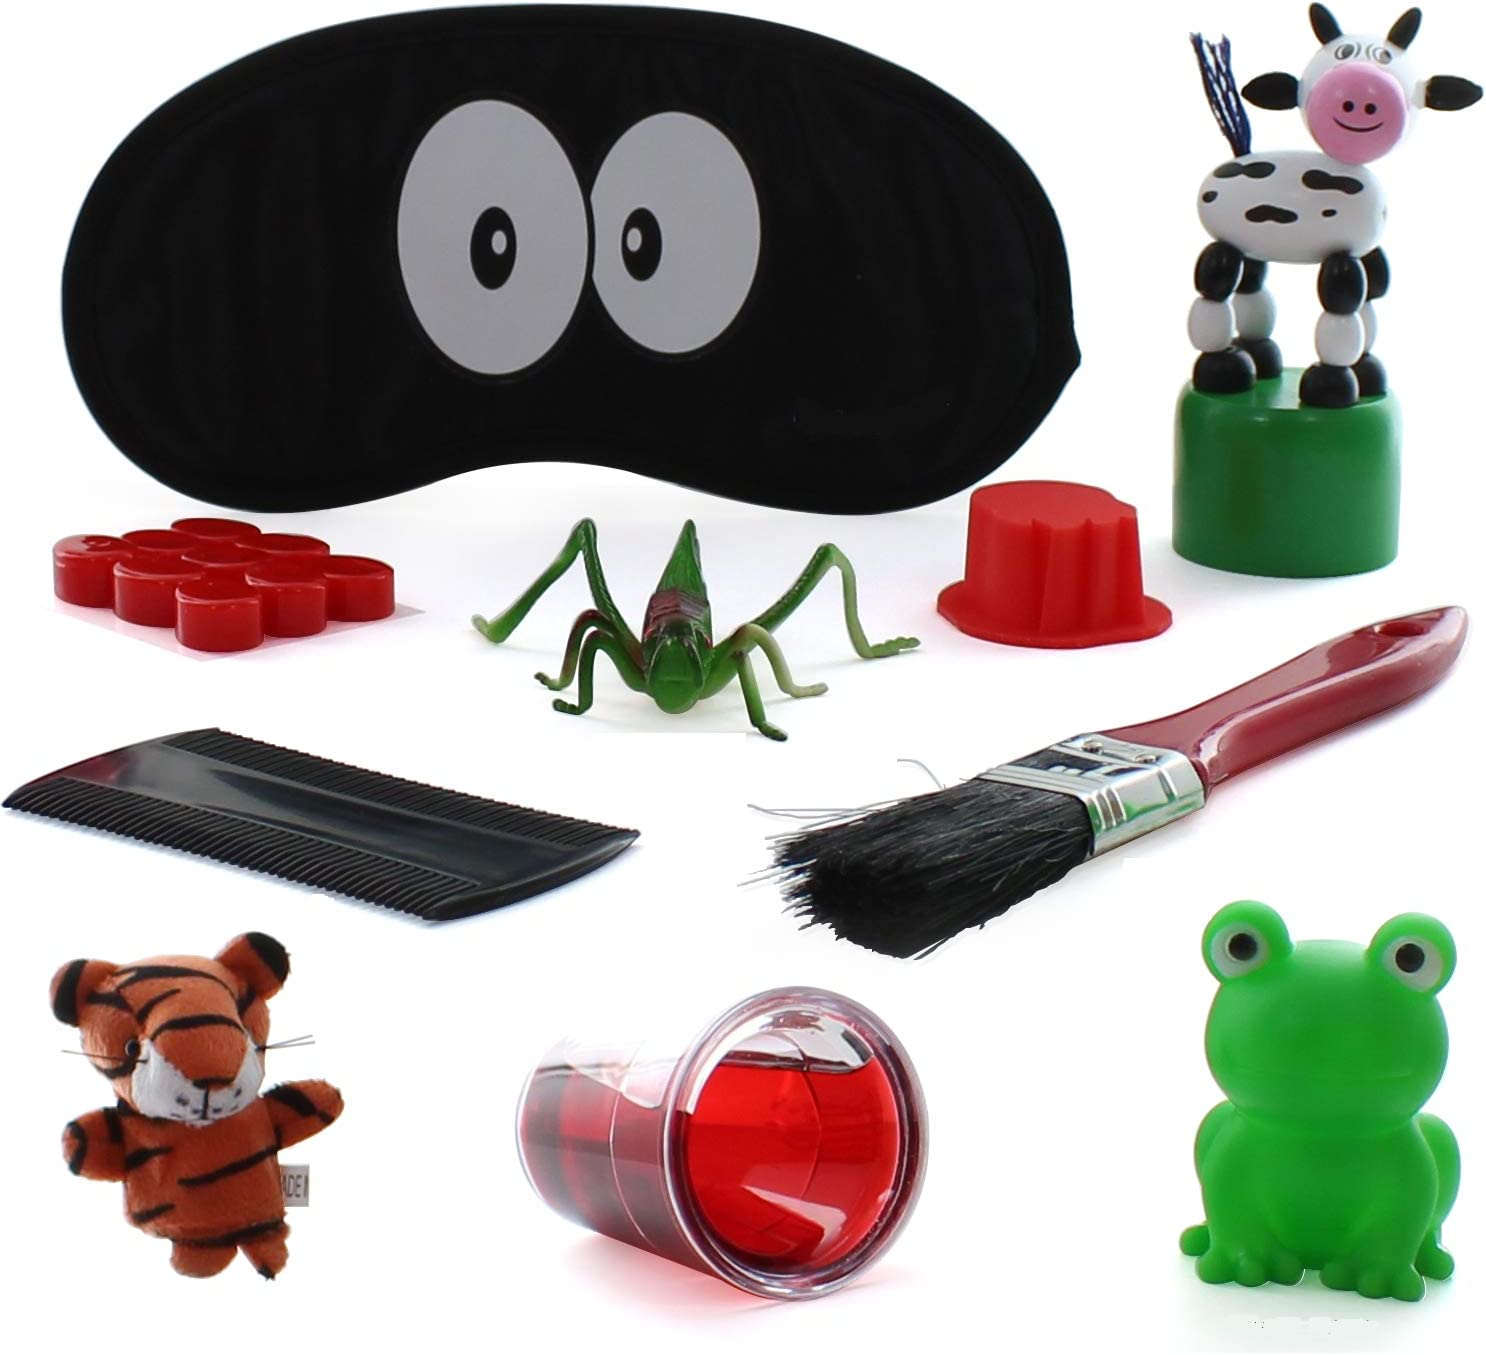 Passover Ten Plagues bag. 10 Plagues of Egypt kit for Seder Table fun & Decoration.